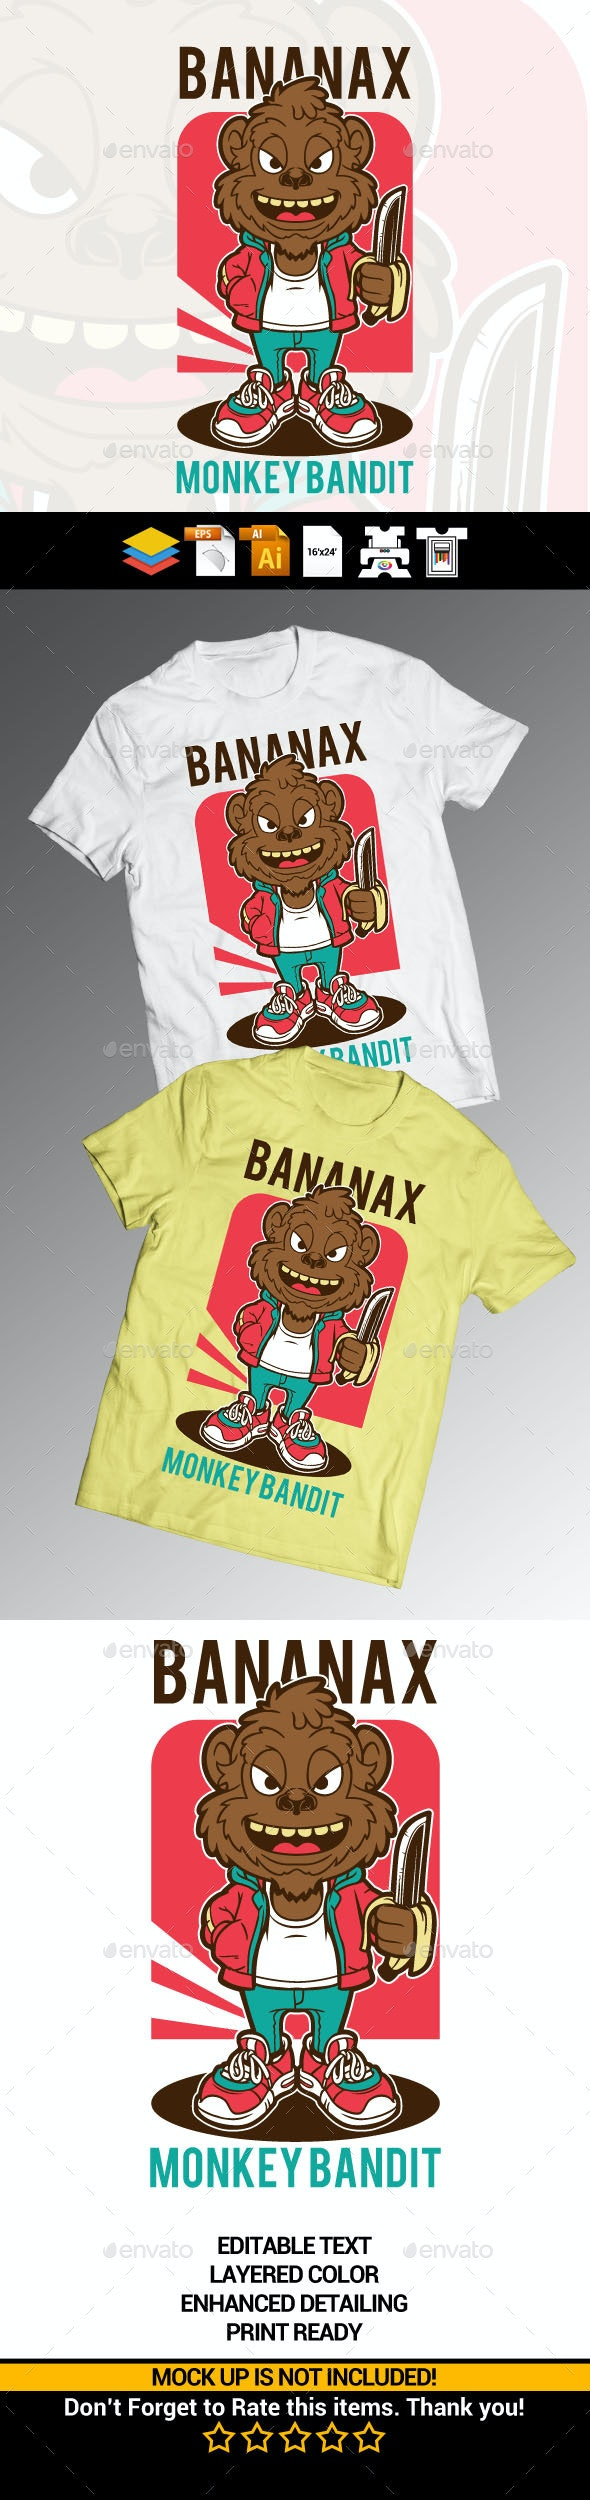 Monkey Banana Bandit - Funny Designs